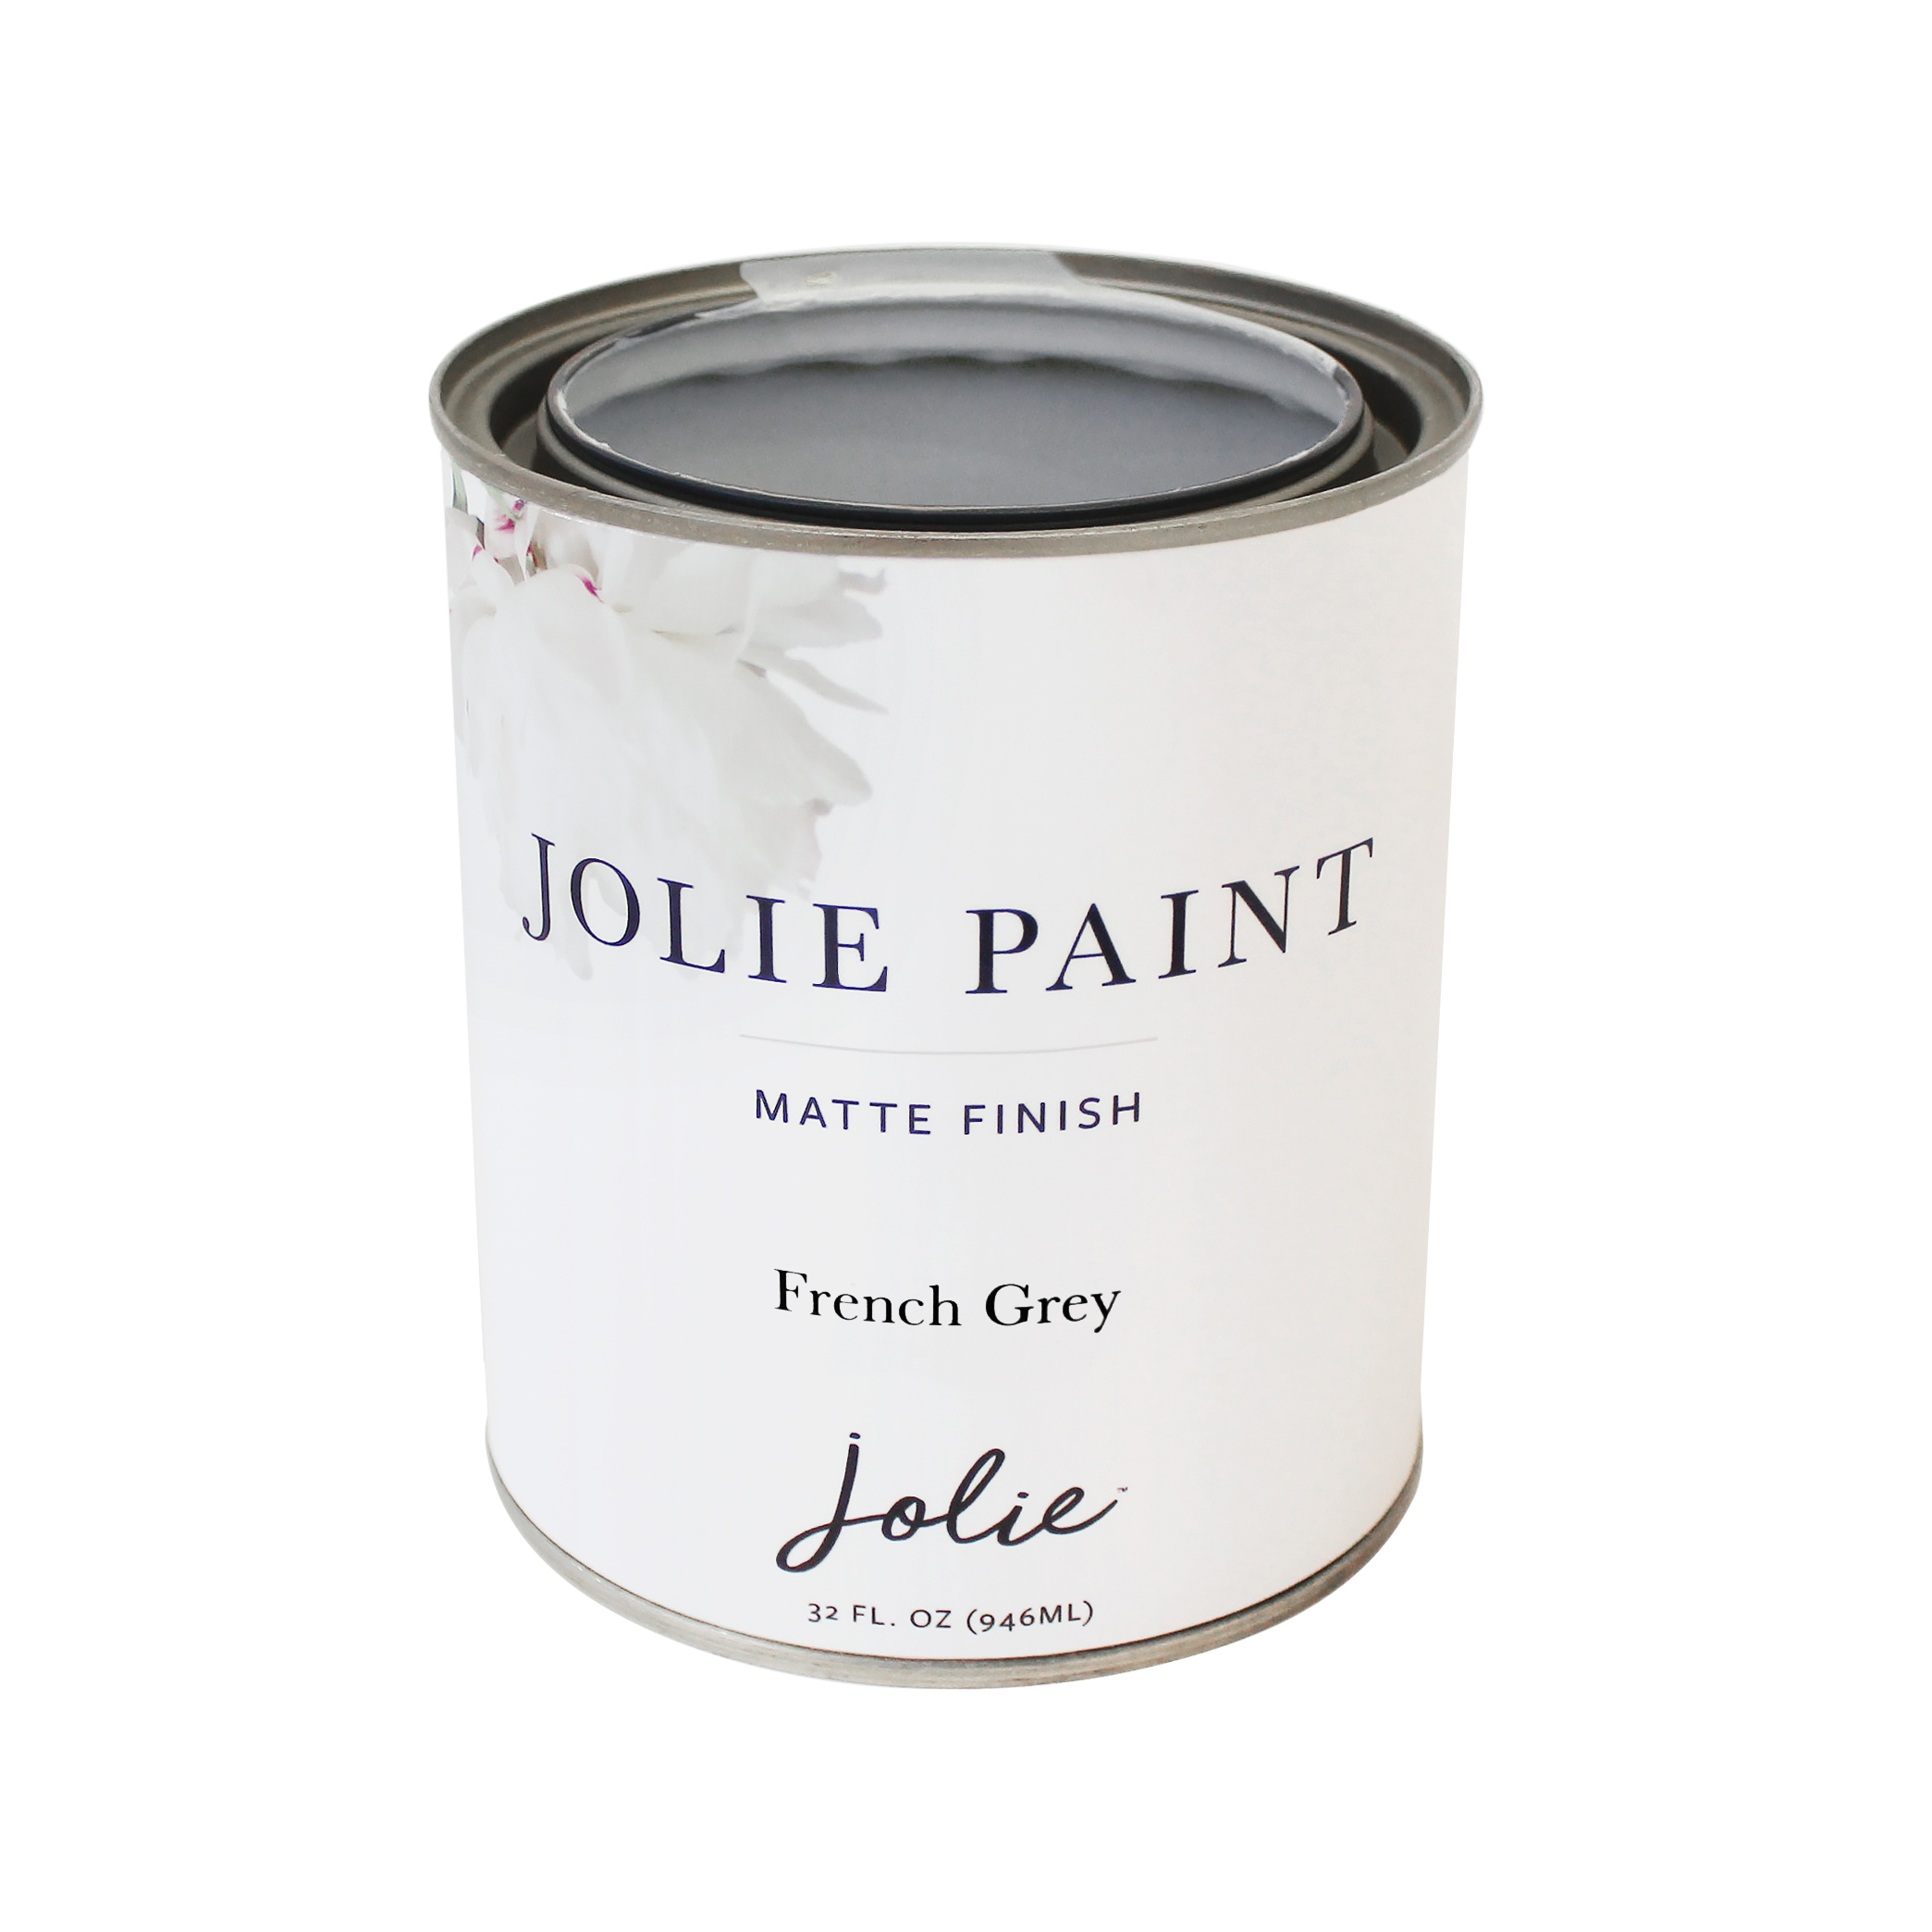 French Grey - Jolie Paint